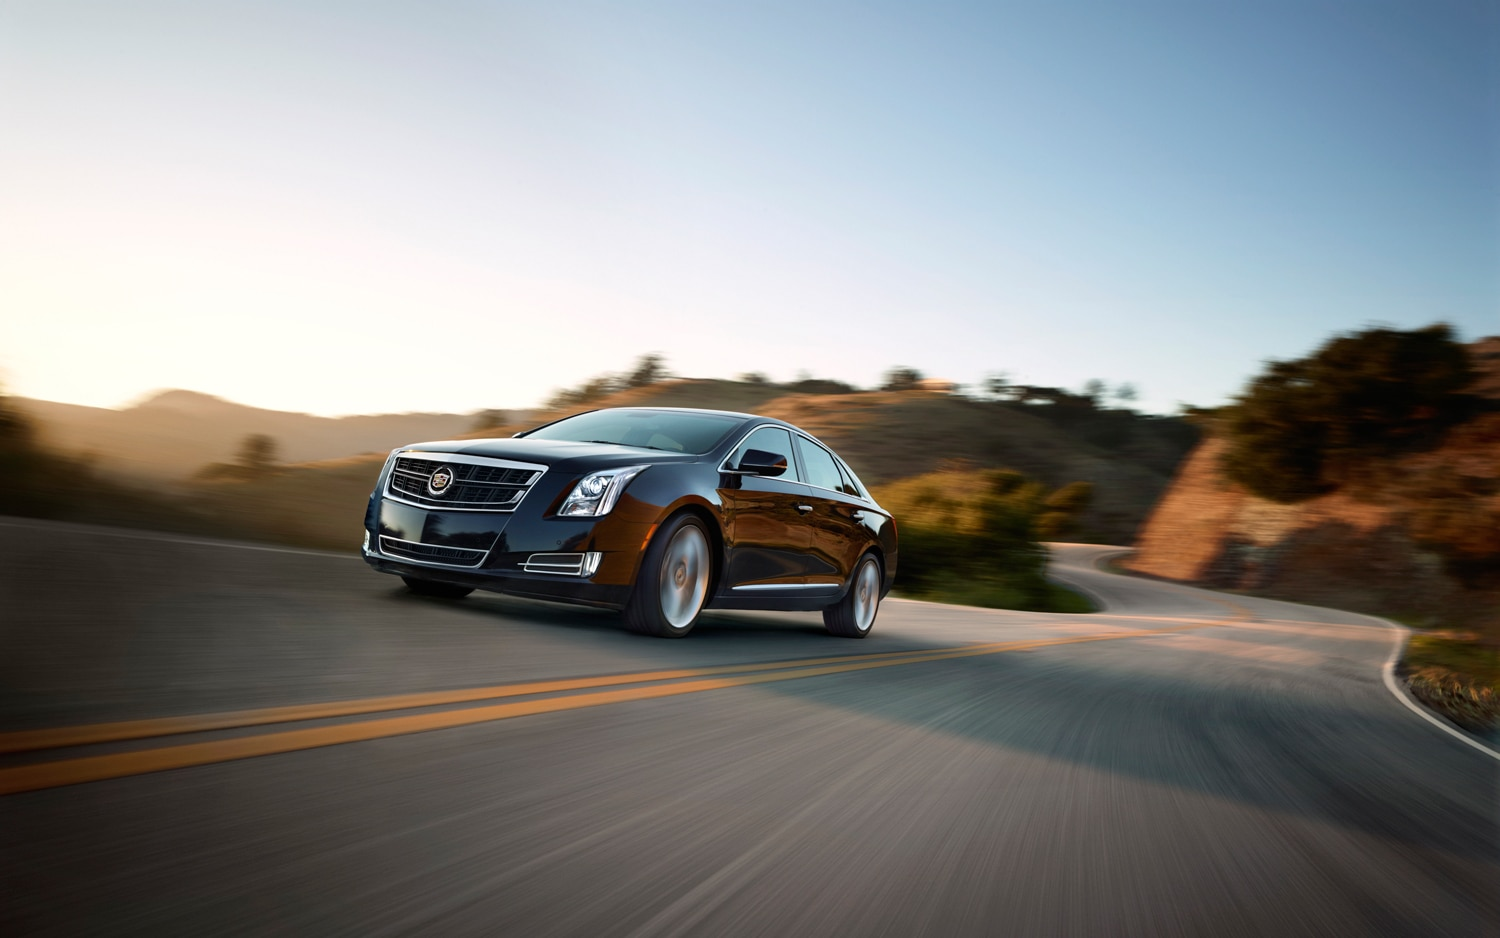 2014 Cadillac XTS Turbo Front Three Quarter In Motion1